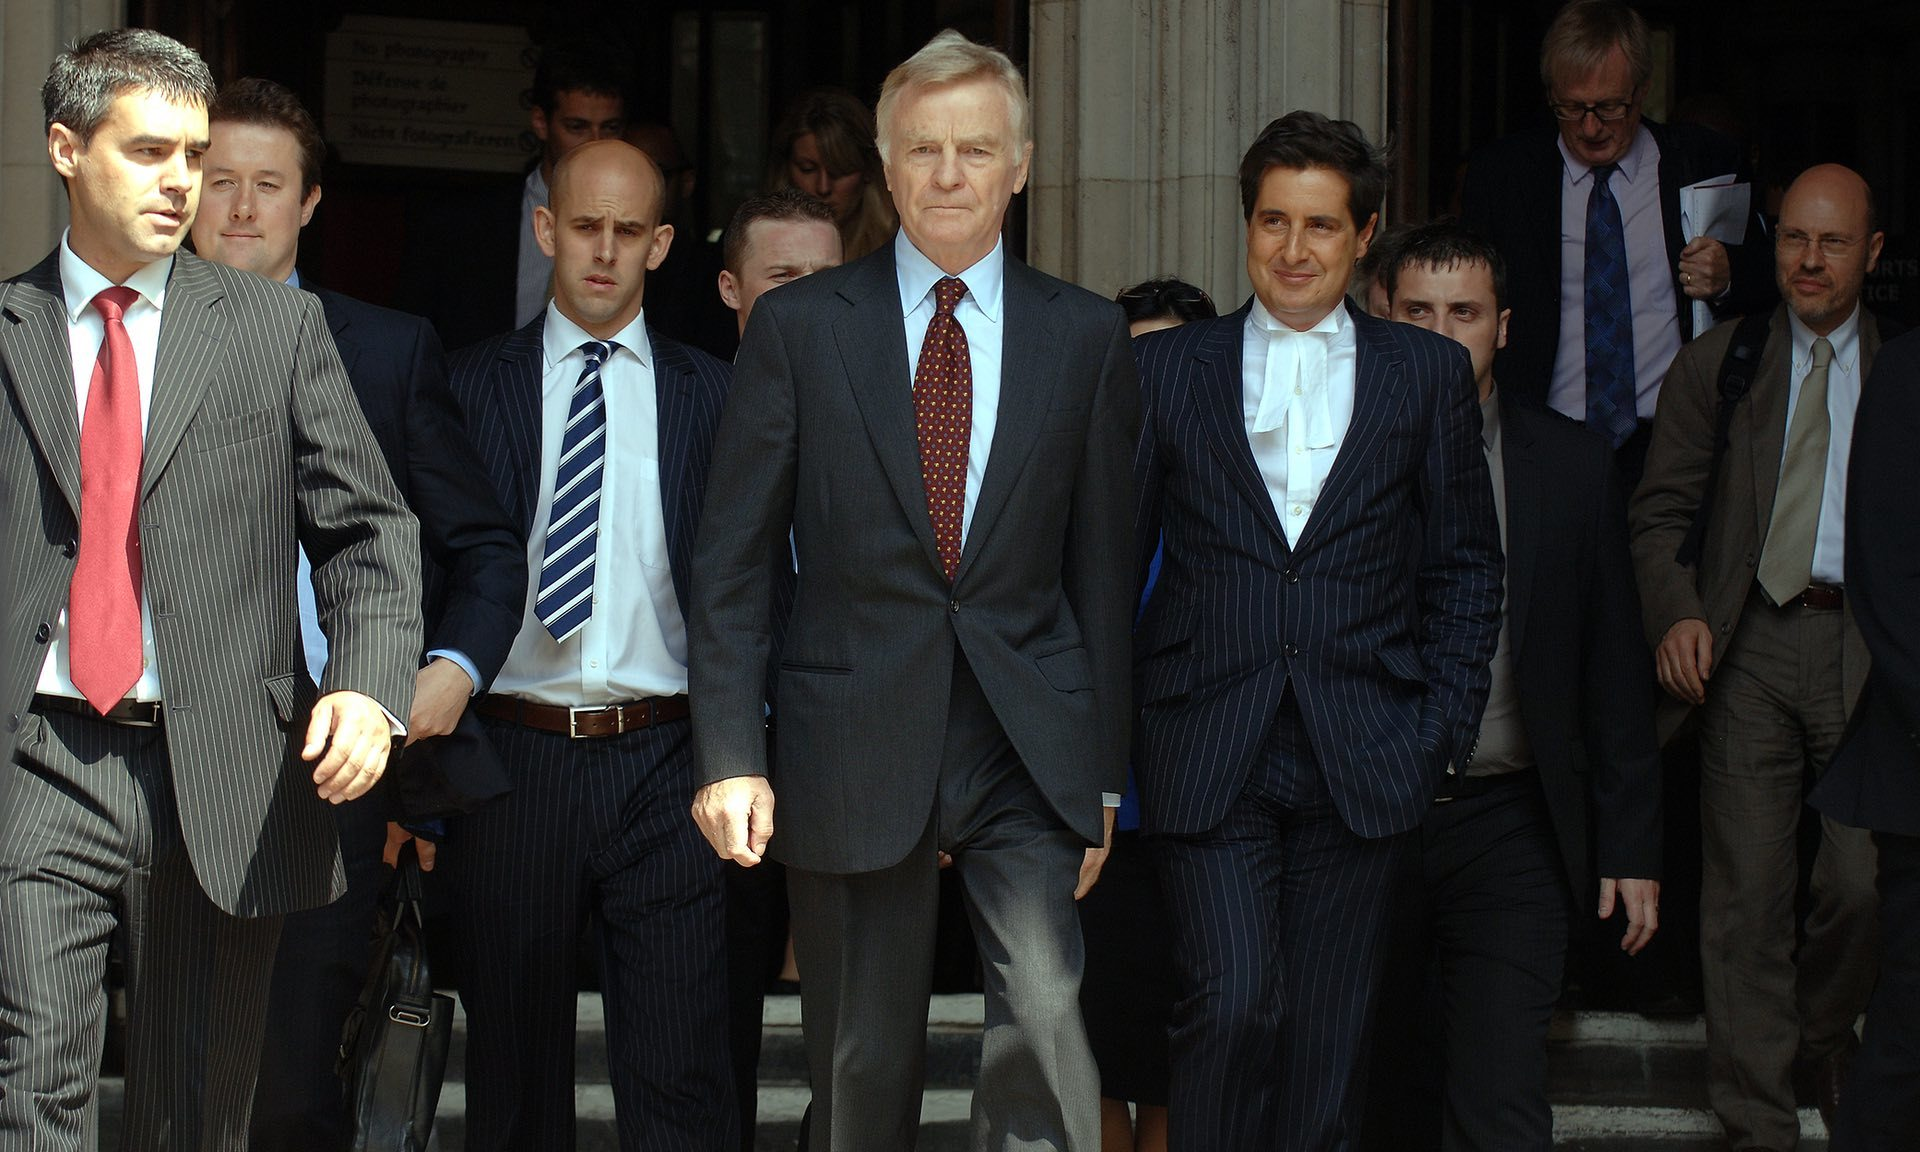 Max Mosley leaves the Royal Courts of Justice after winning a privacy invasion lawsuit against the News of the World in 2008.